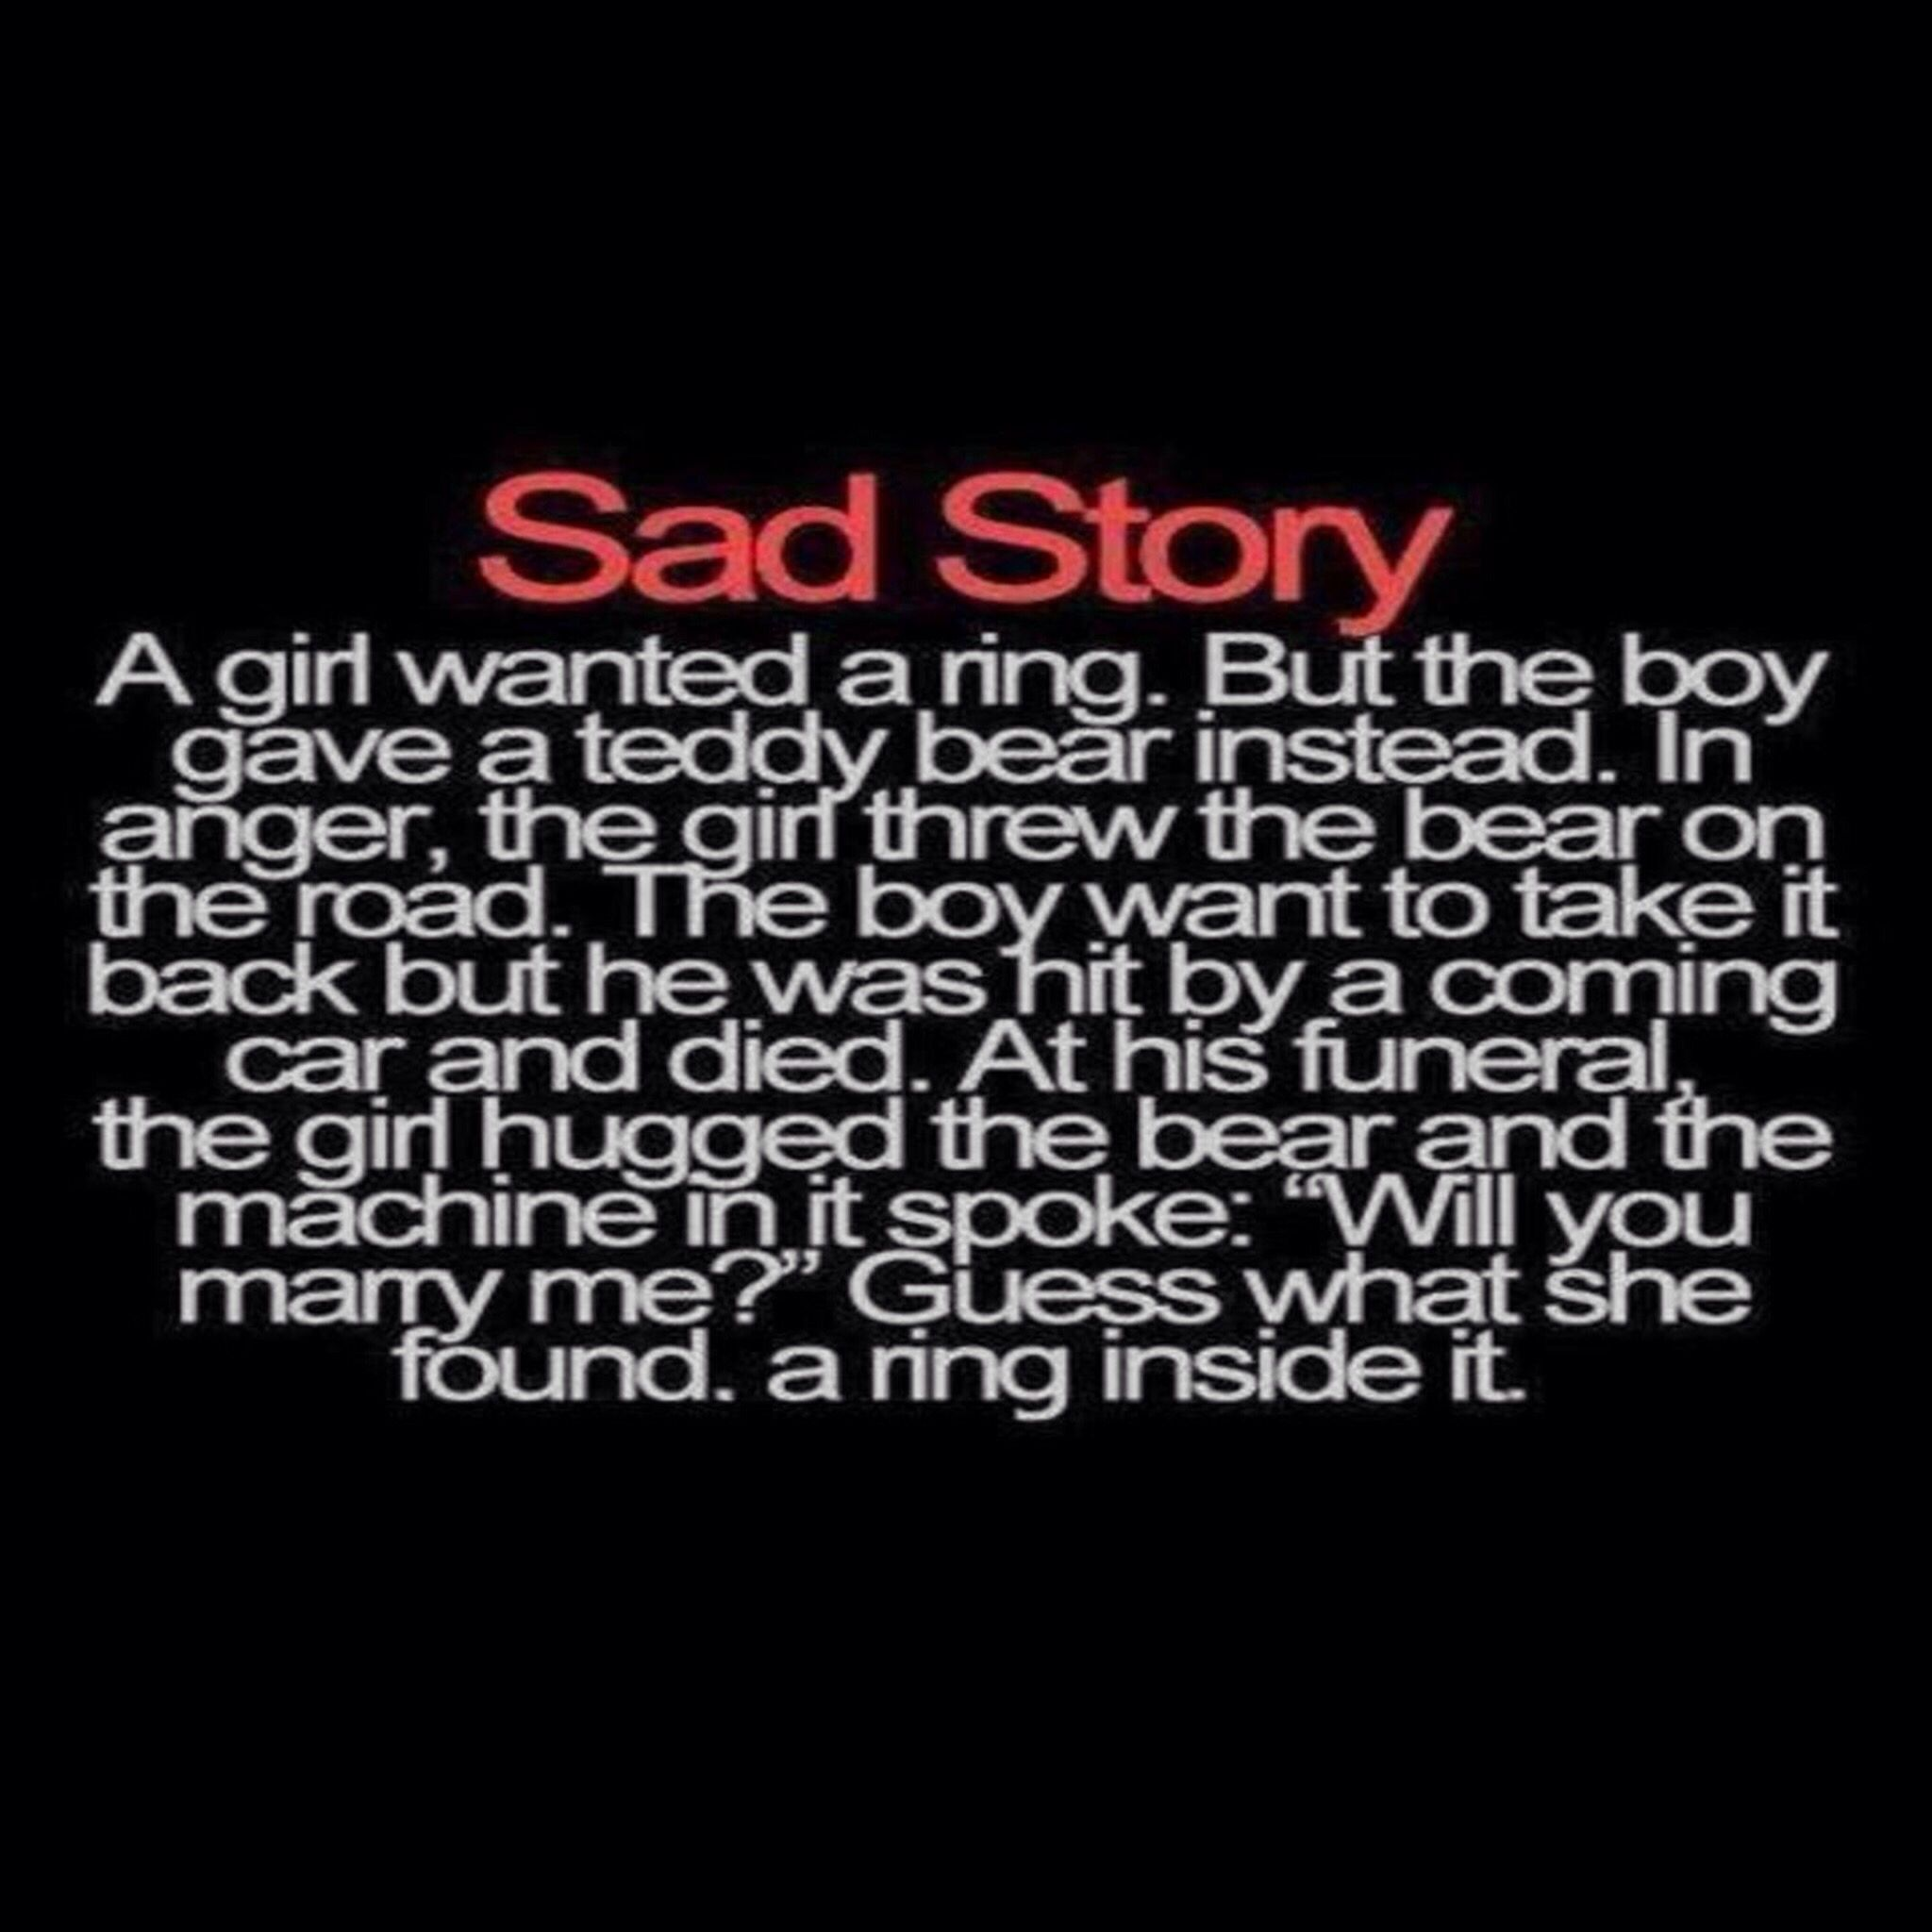 Quotes Sad Love Story: Poor Girl And Boy Cant Be Together